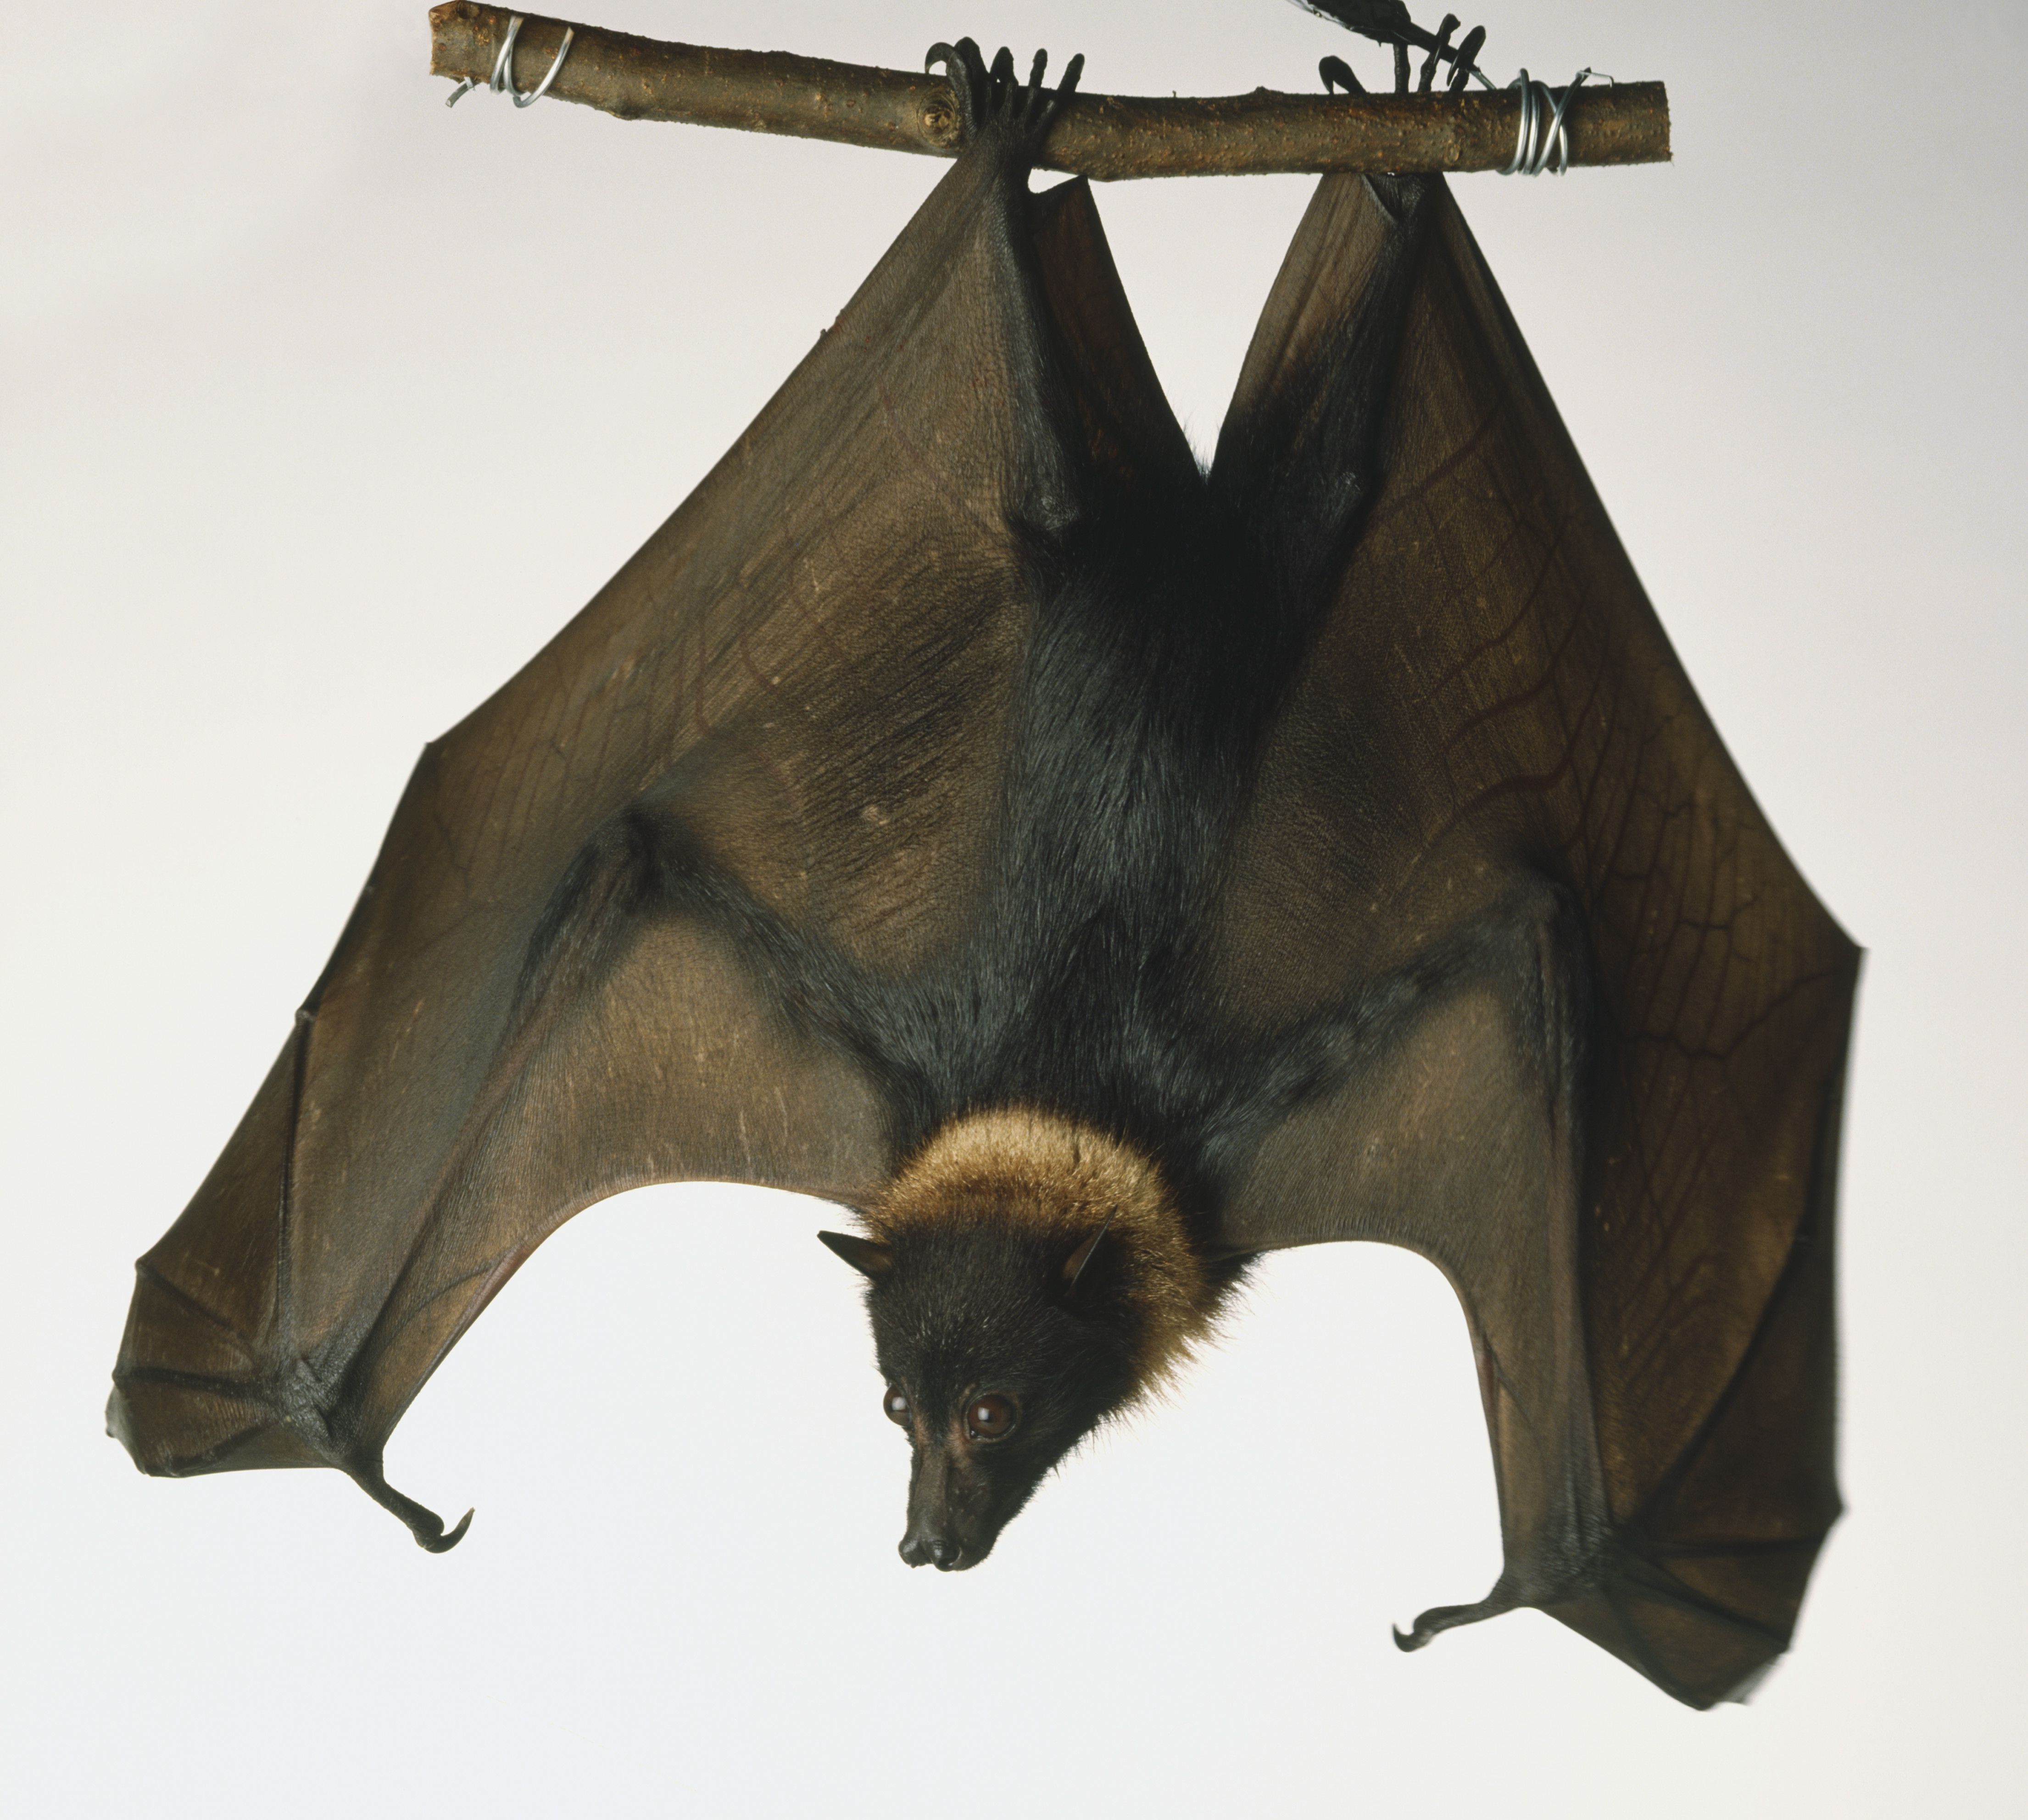 Understand the meaning of popular feng shui symbols feng shui use of the bat symbol biocorpaavc